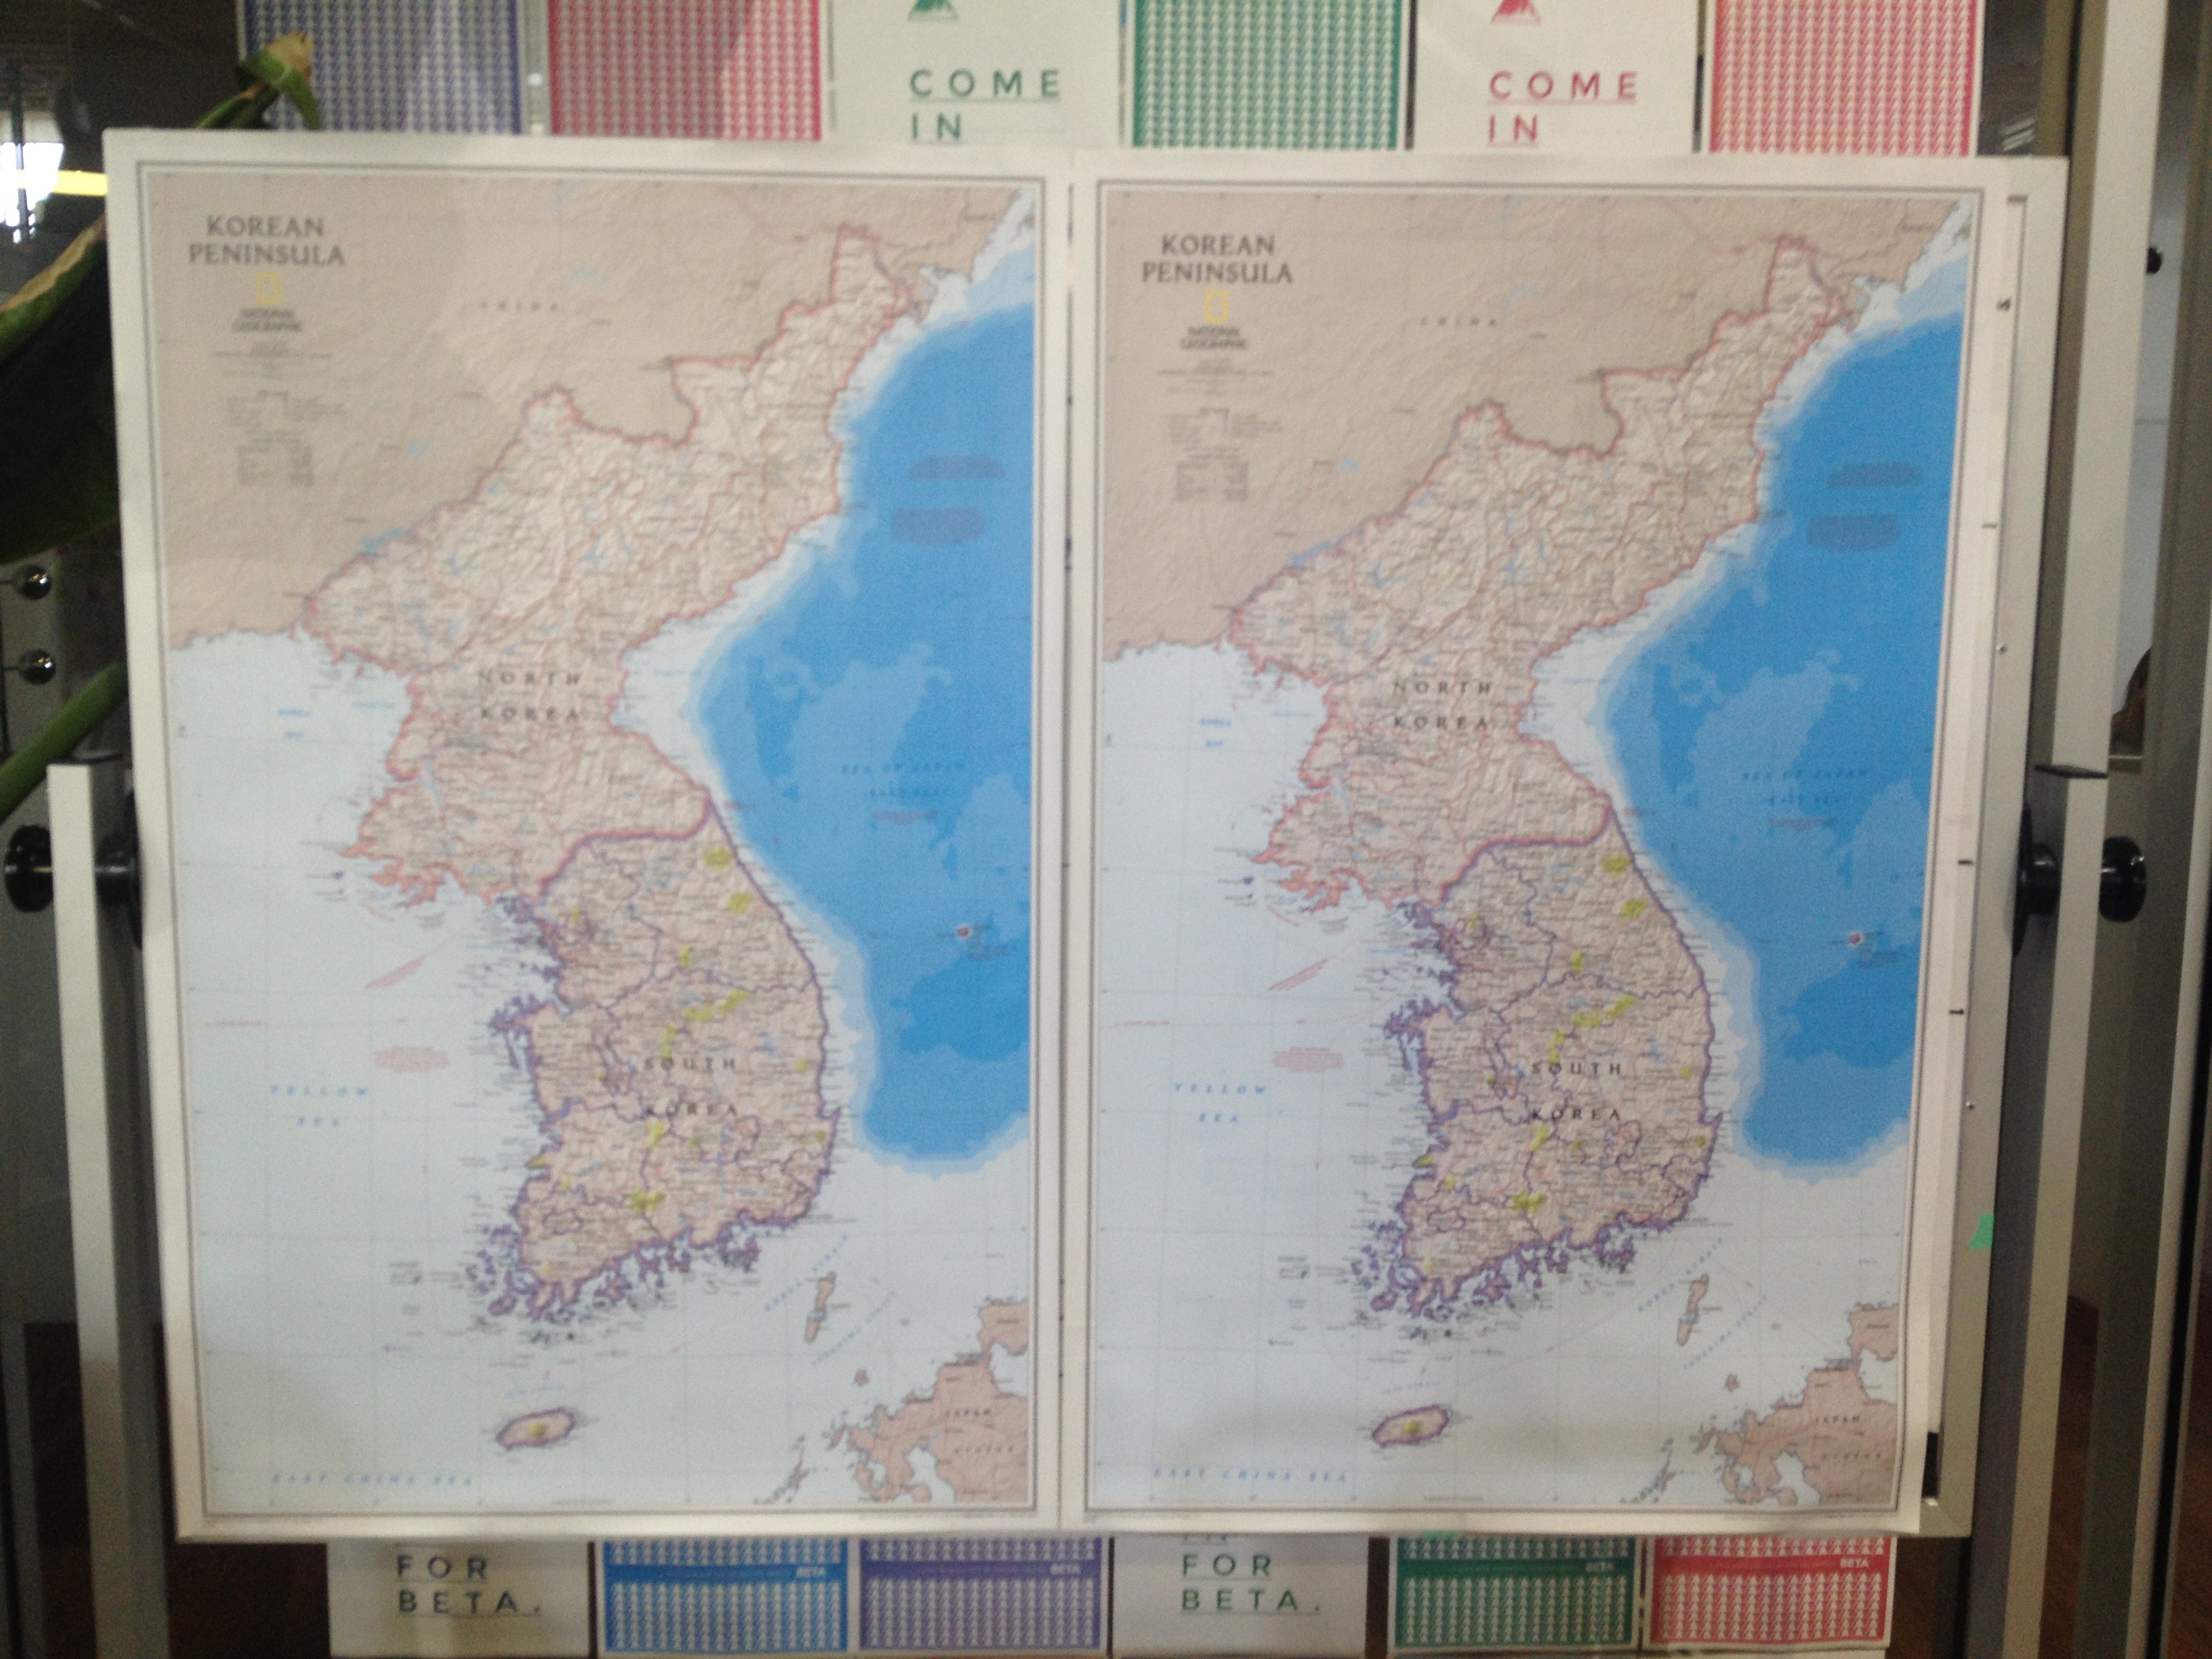 This map of the Korean peninsula served as one of the backdrops at the Hack North Korea event.